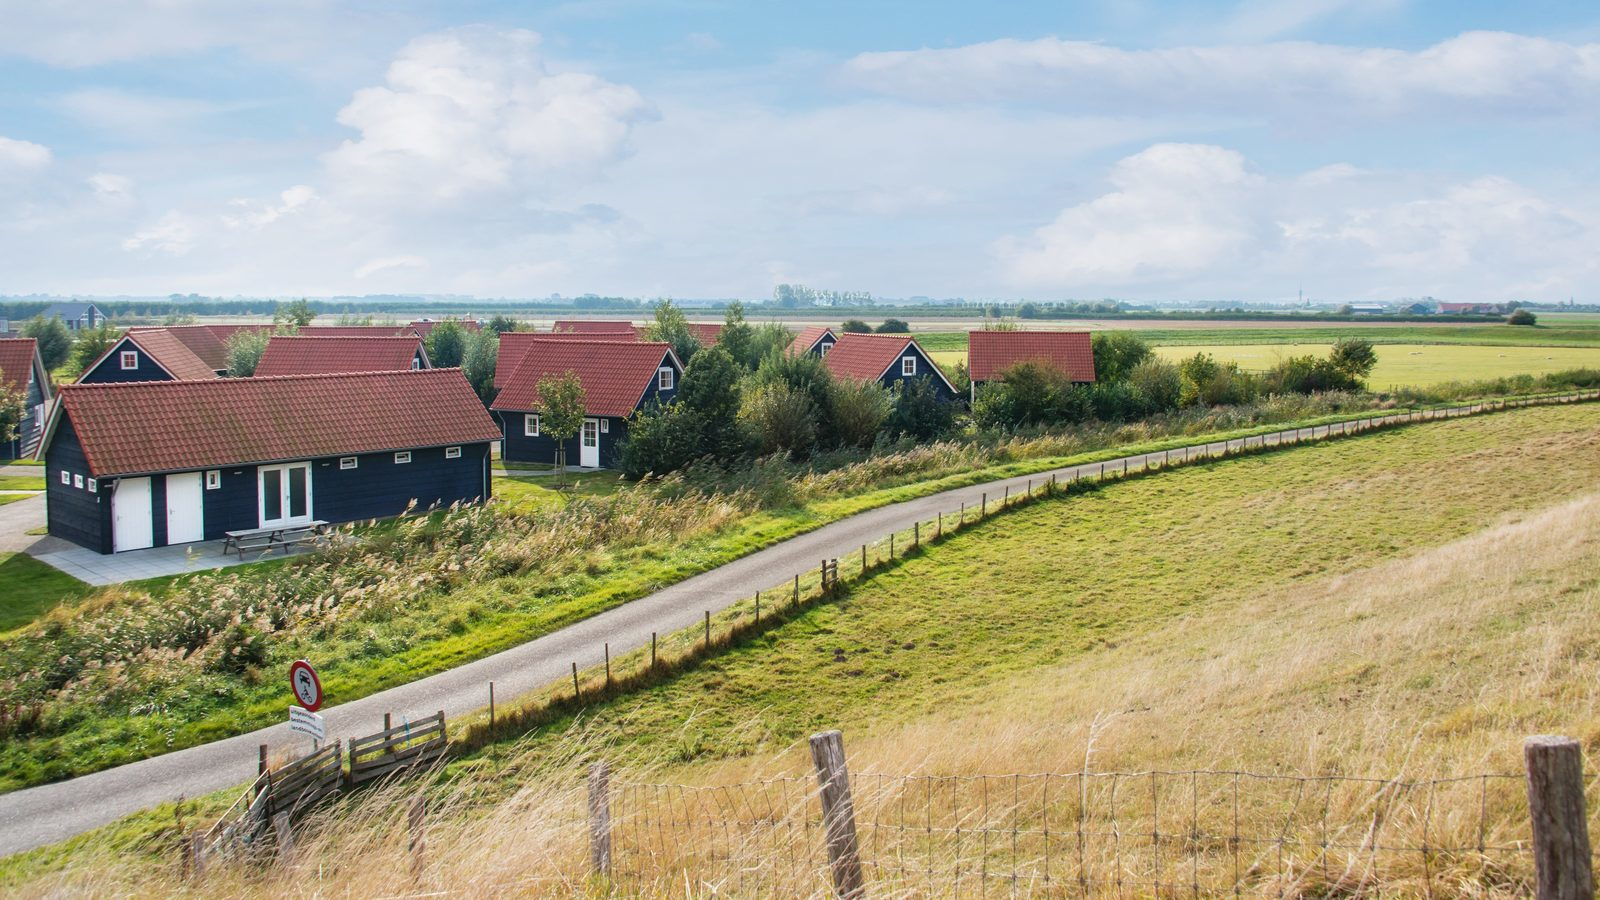 Zeeland cottages